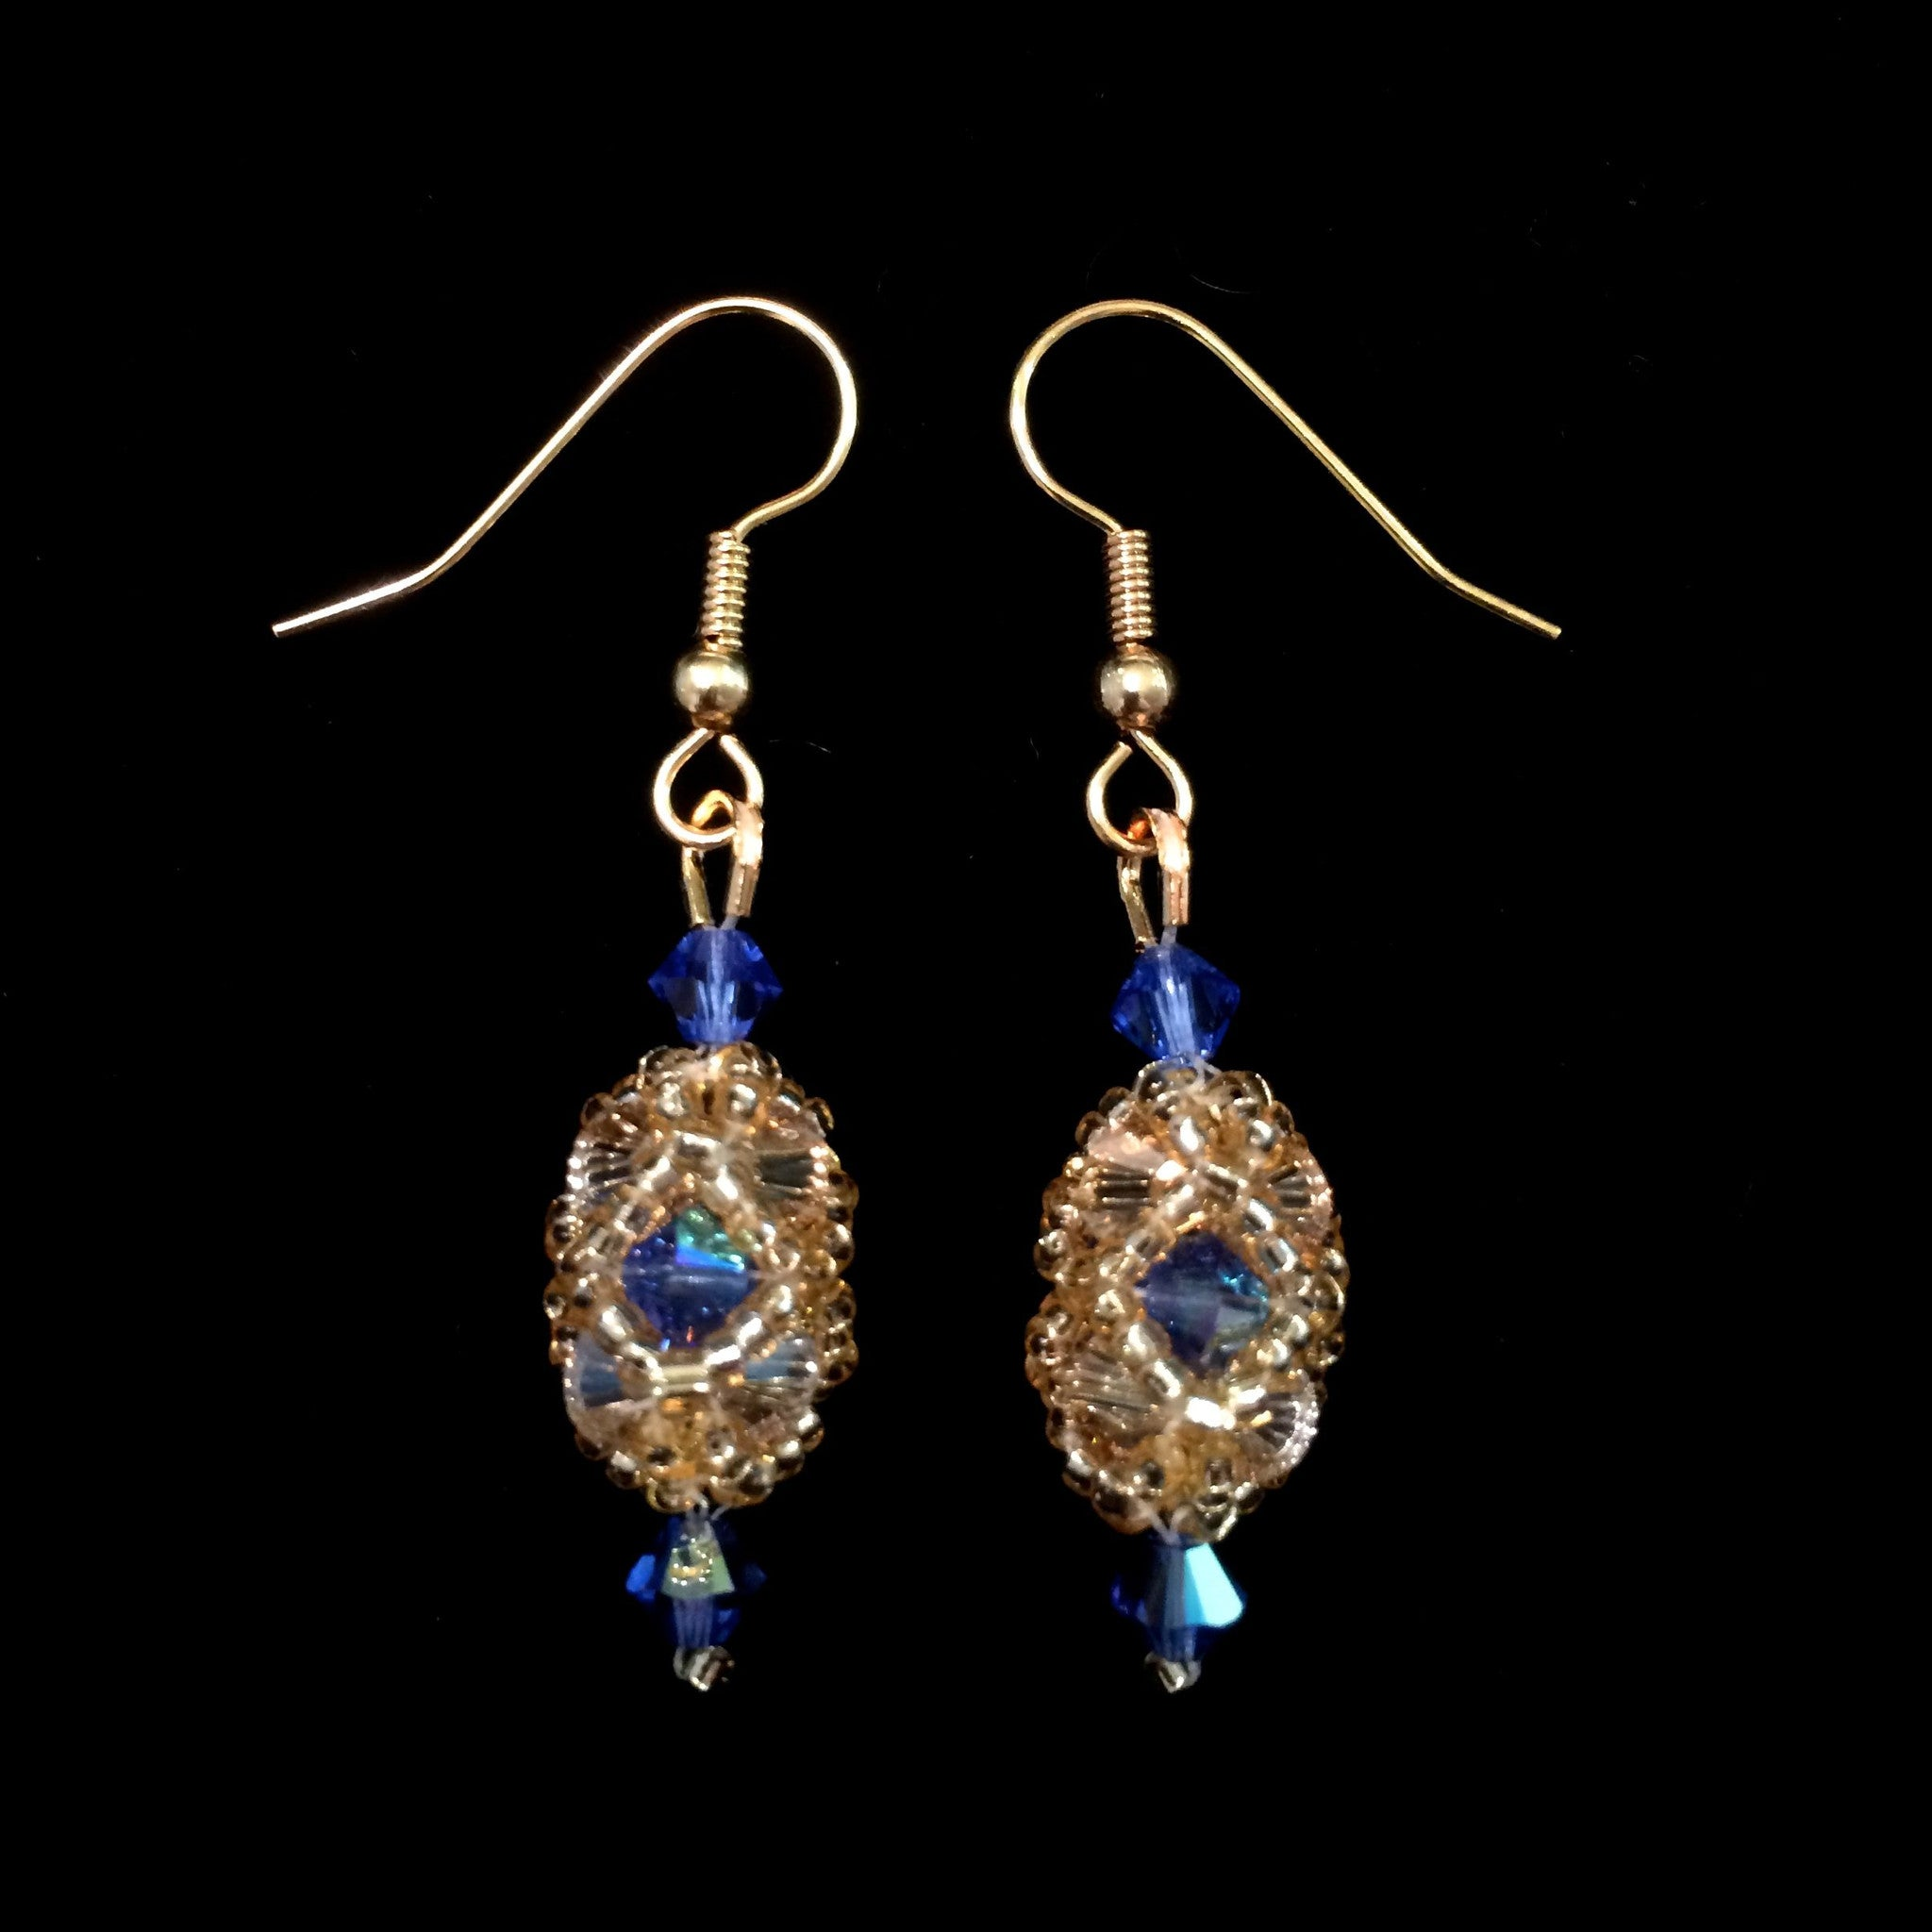 golden capturedgracesappgold shadow earrings sapphire swarovski grace captured closeup buzzy products